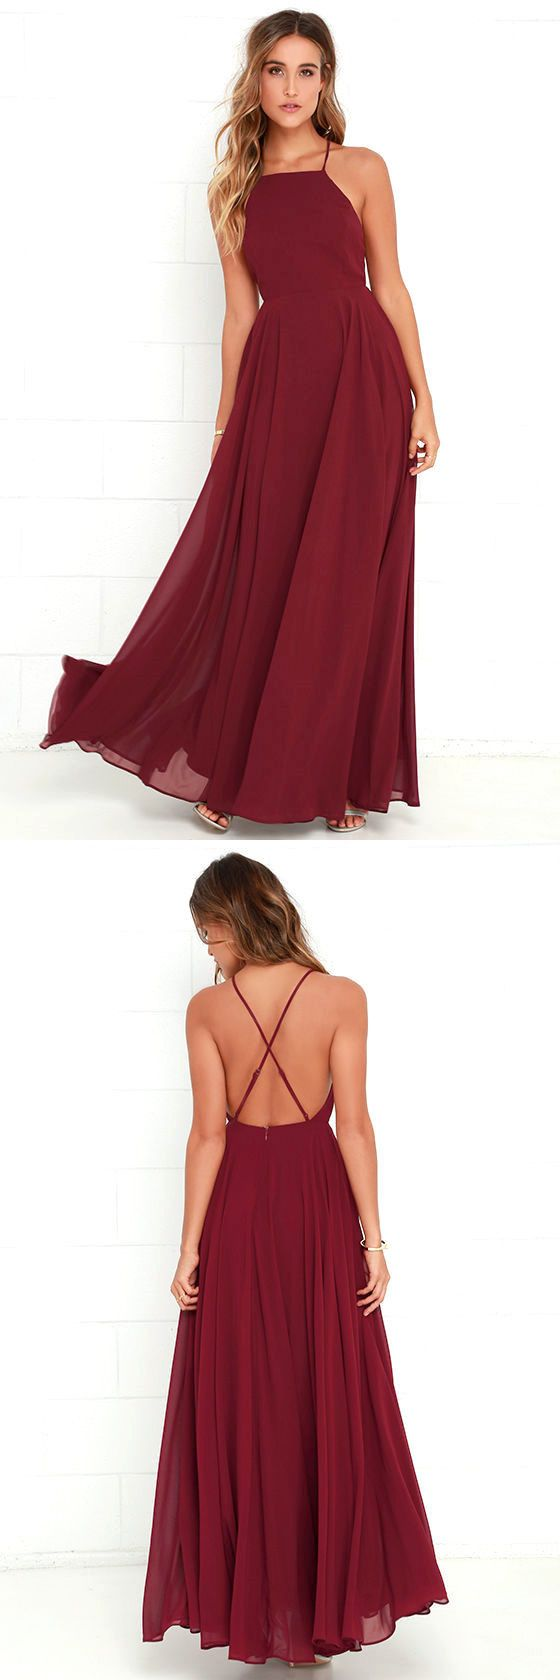 Best 25 burgundy bridesmaid dresses cheap ideas on pinterest burgundy long prom dress cheap prom dress under 100 2017 long prom dress bridesmaid ombrellifo Gallery